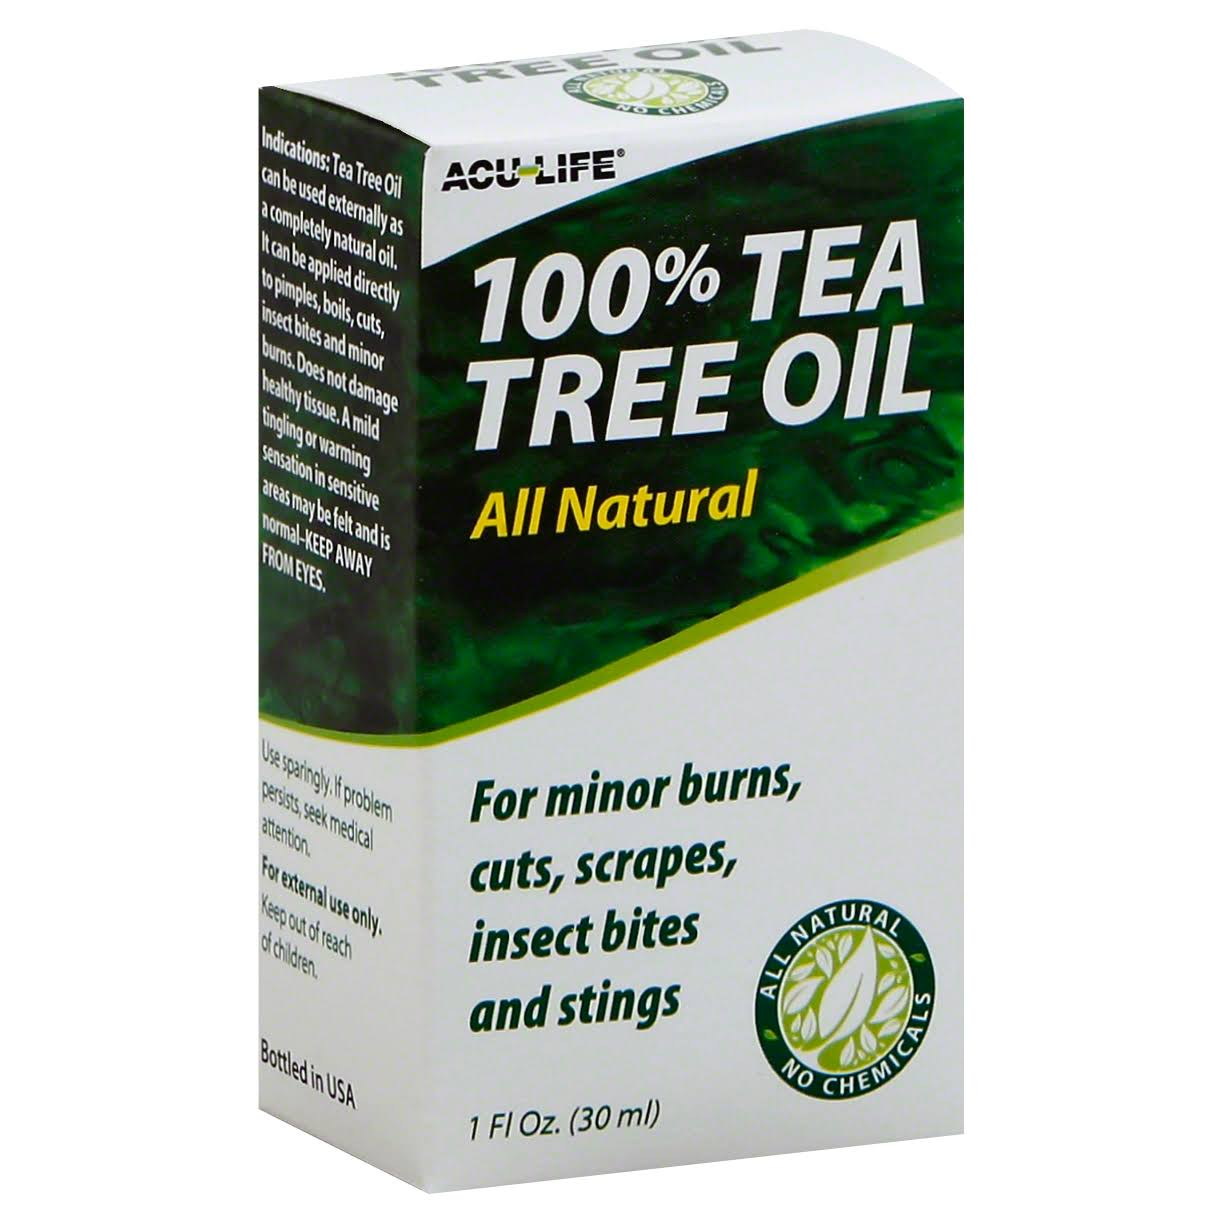 Acu-Life 100% Tea Tree Oil - 30ml